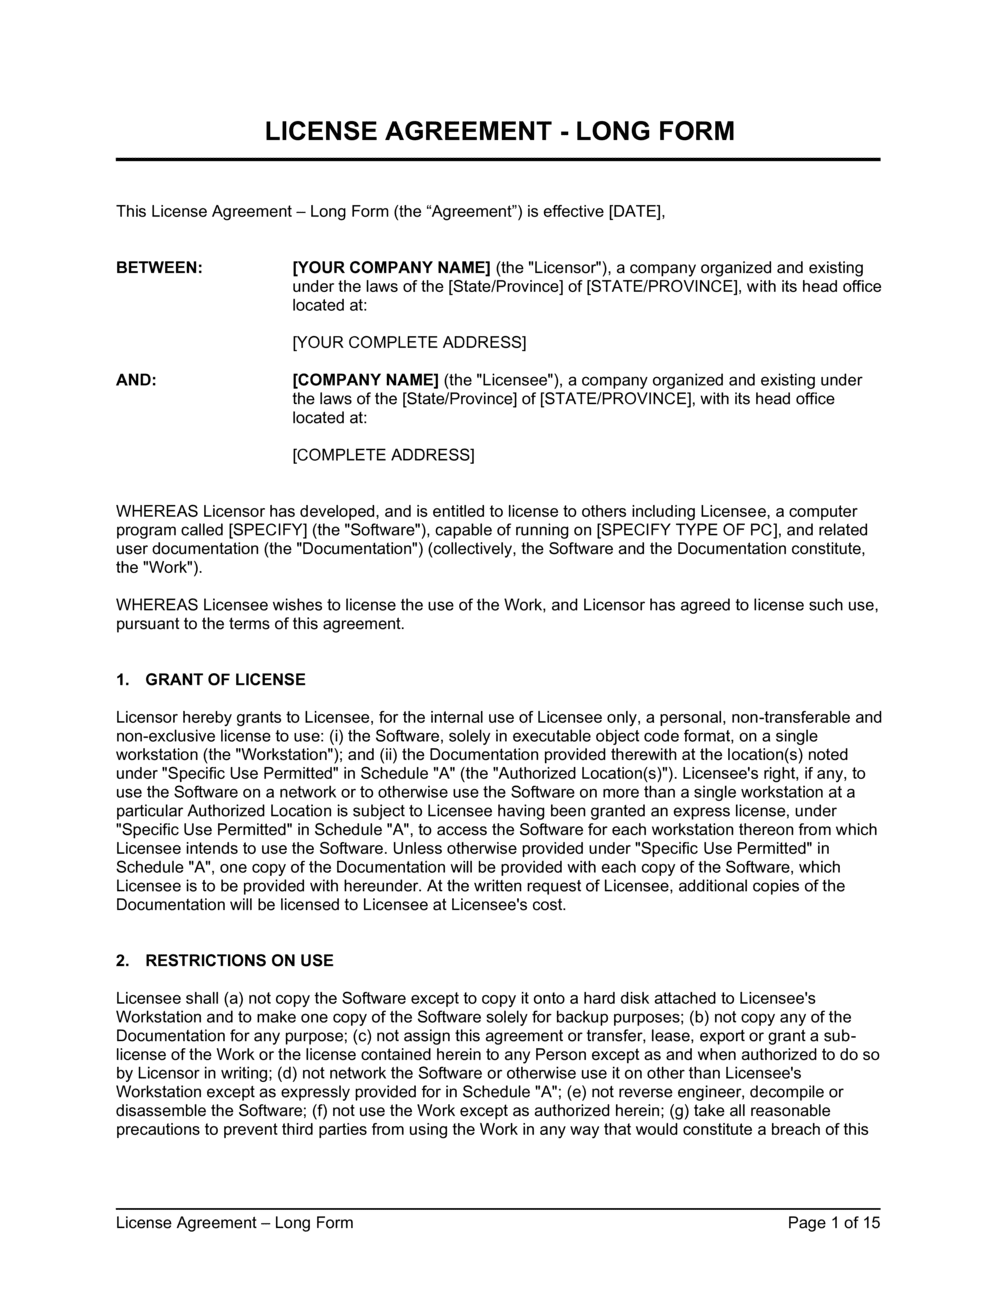 Business-in-a-Box's License Agreement Long Form Template